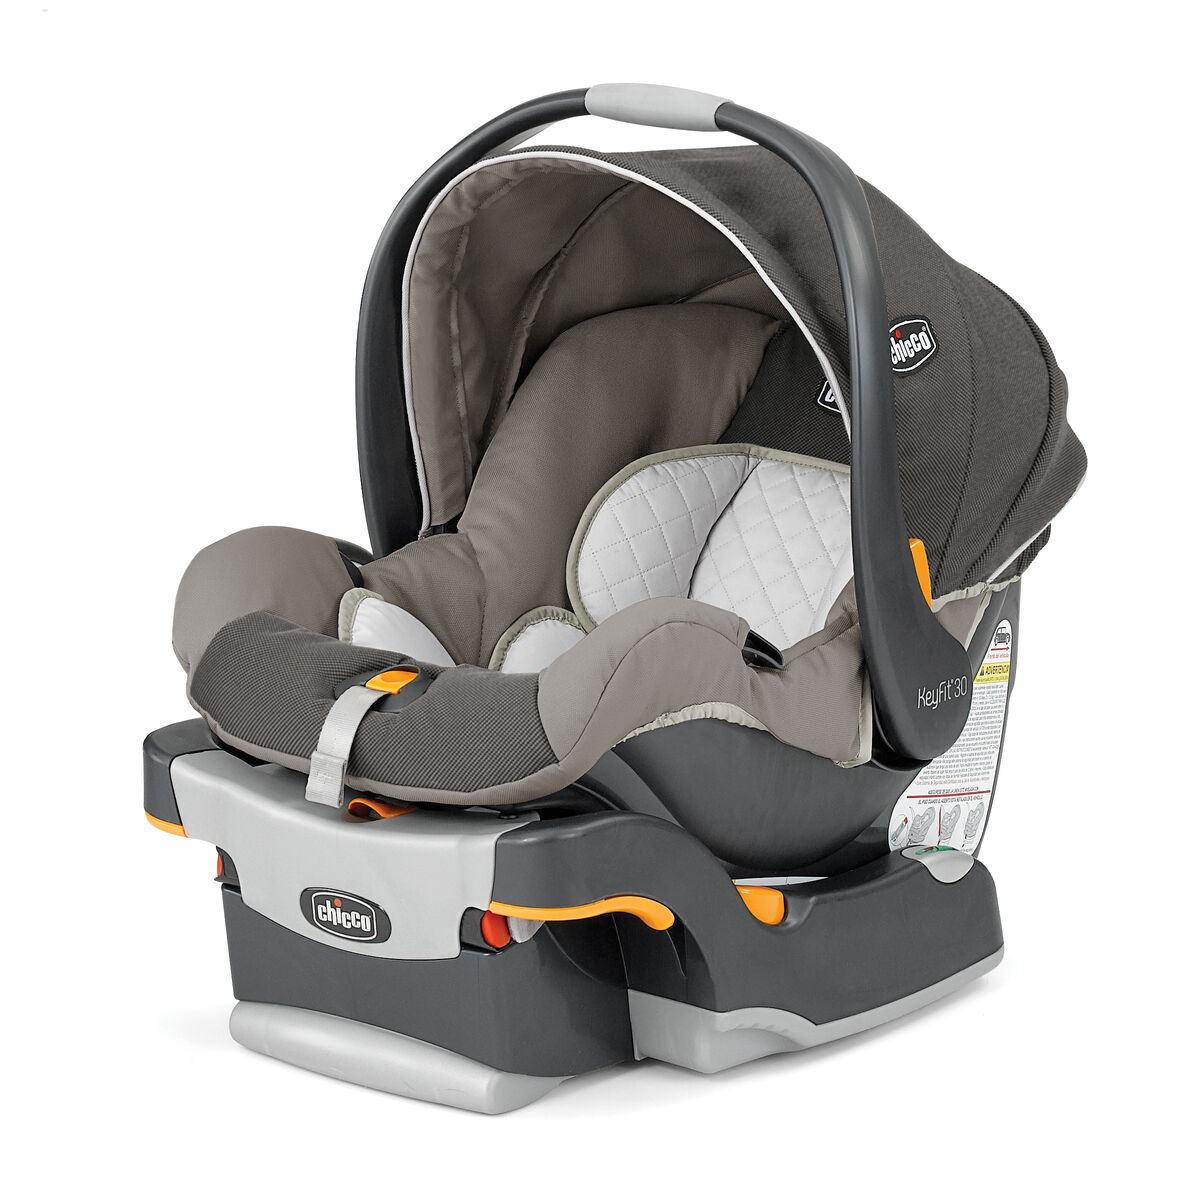 Chicco Car Seat Travel Bag